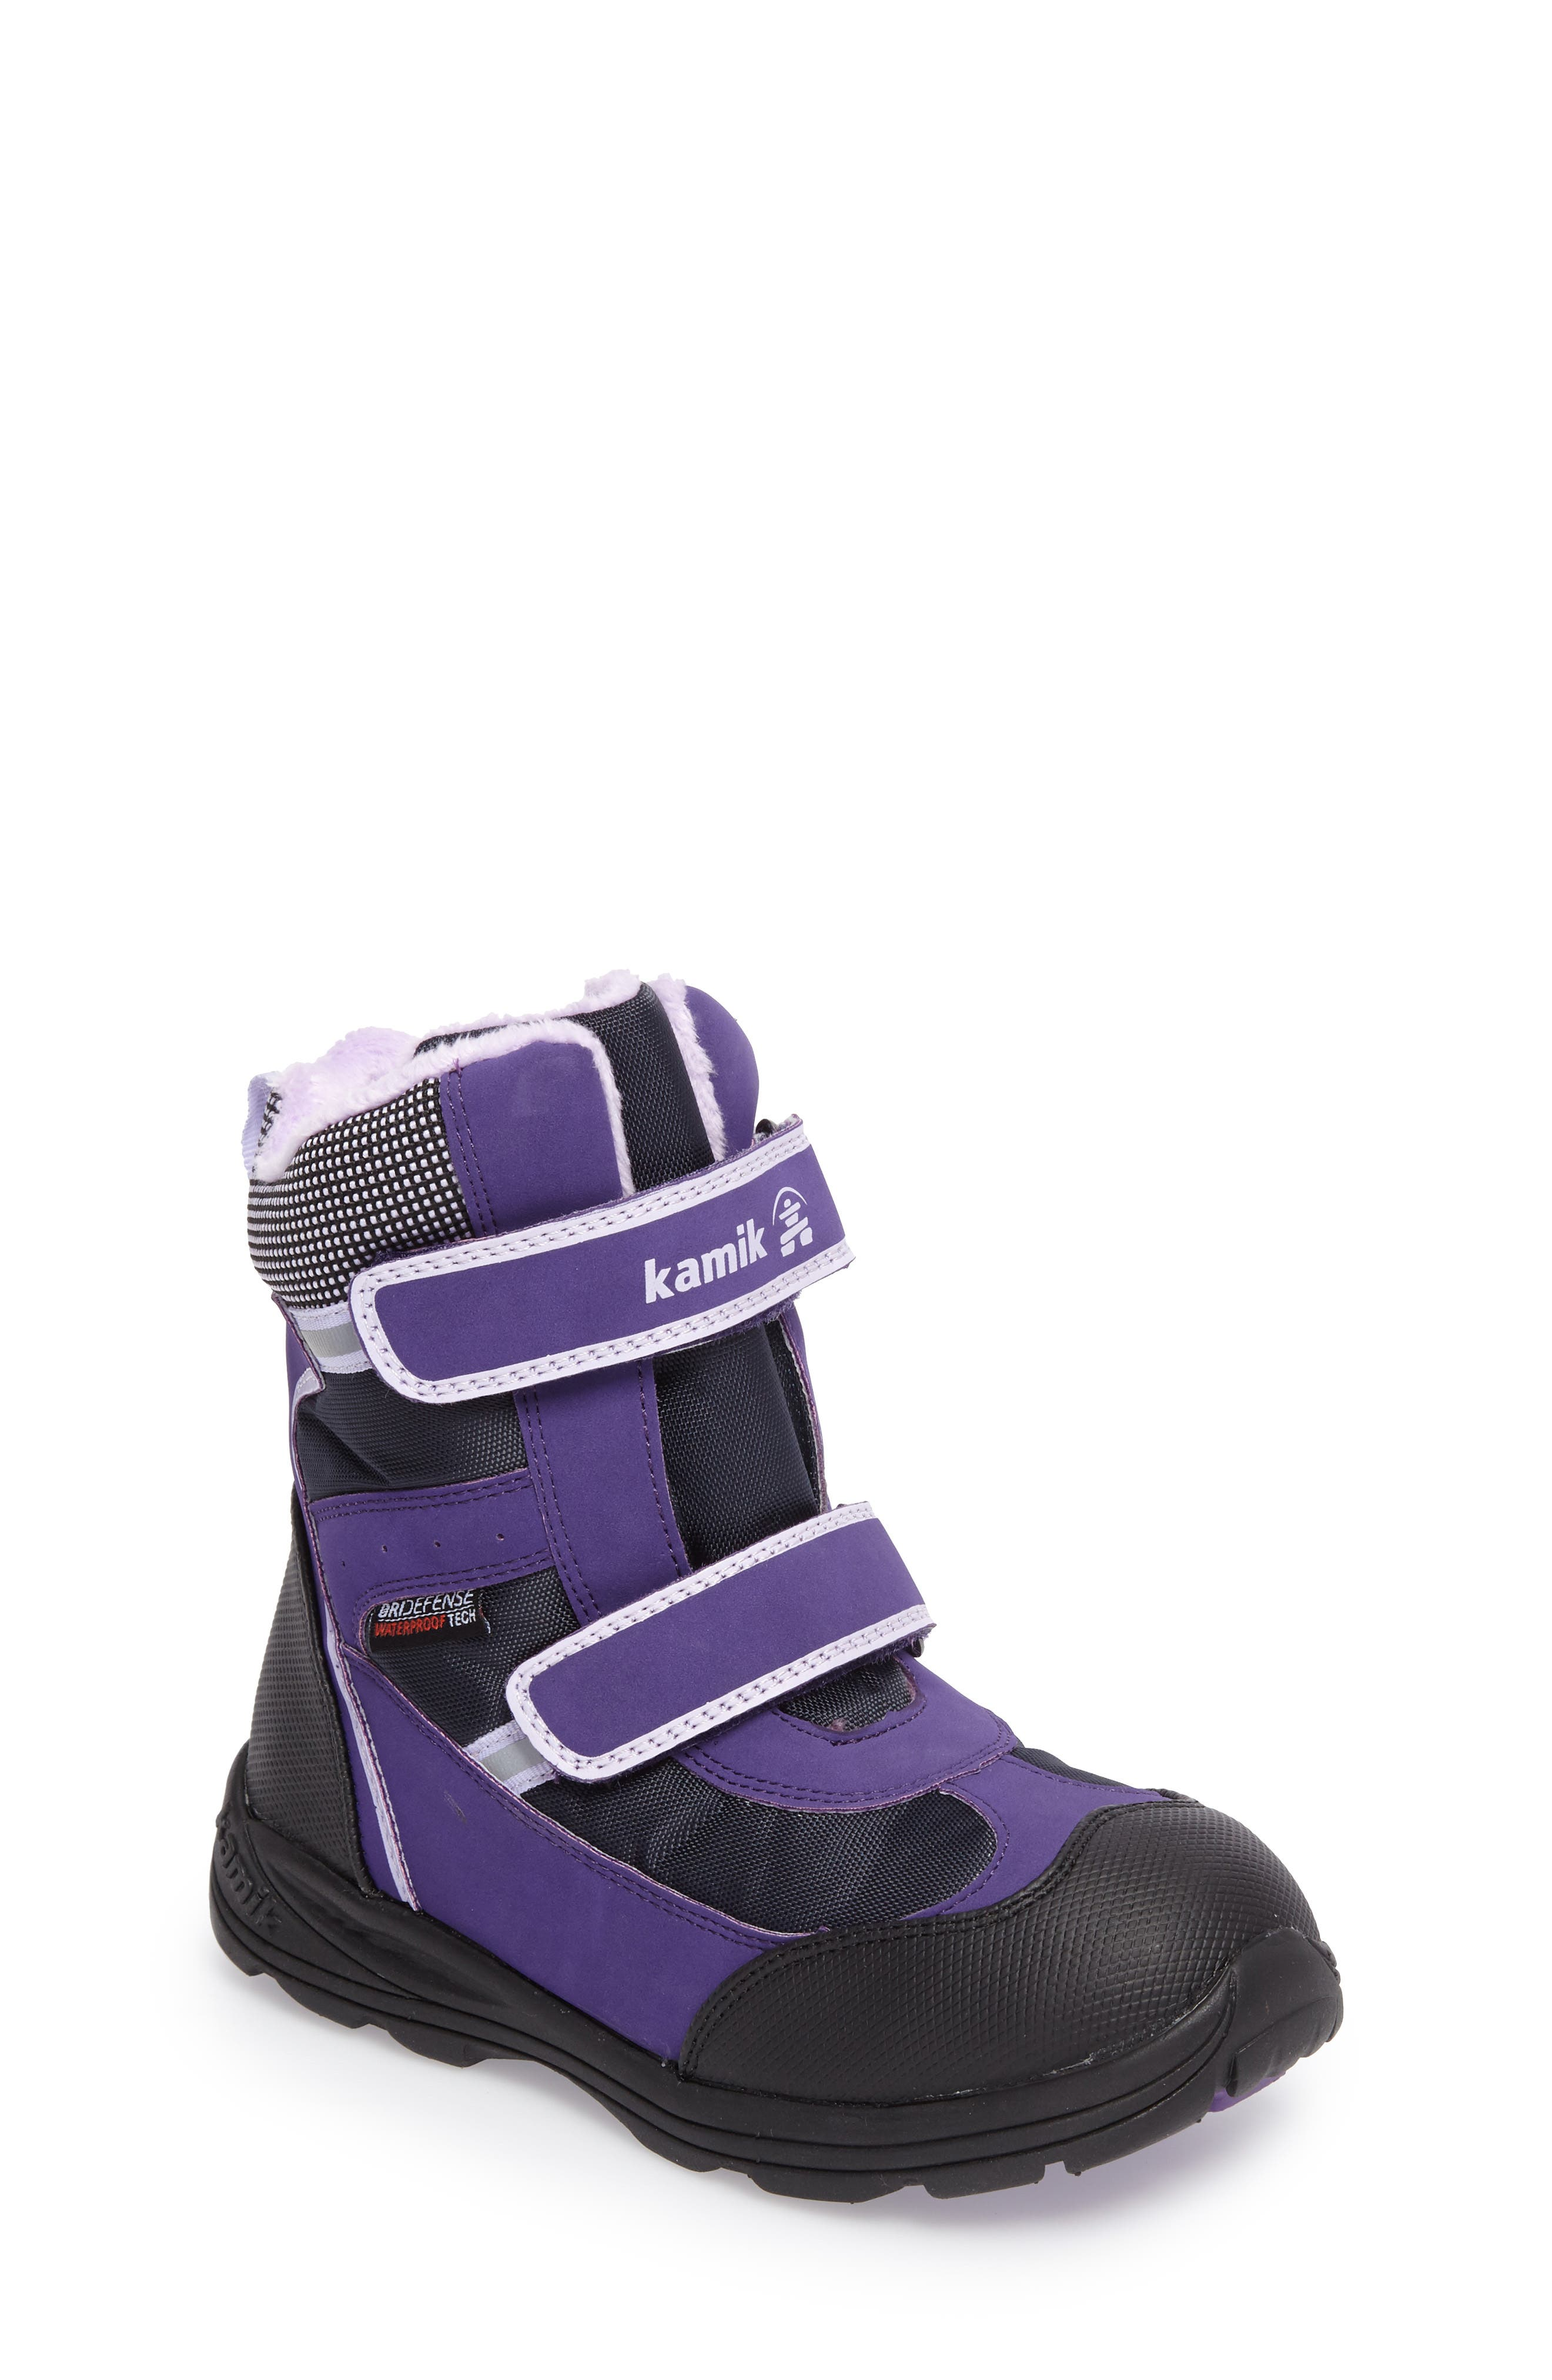 Alternate Image 1 Selected - Kamik Slate Snow Boot (Toddler, Little Kid & Big Kid)